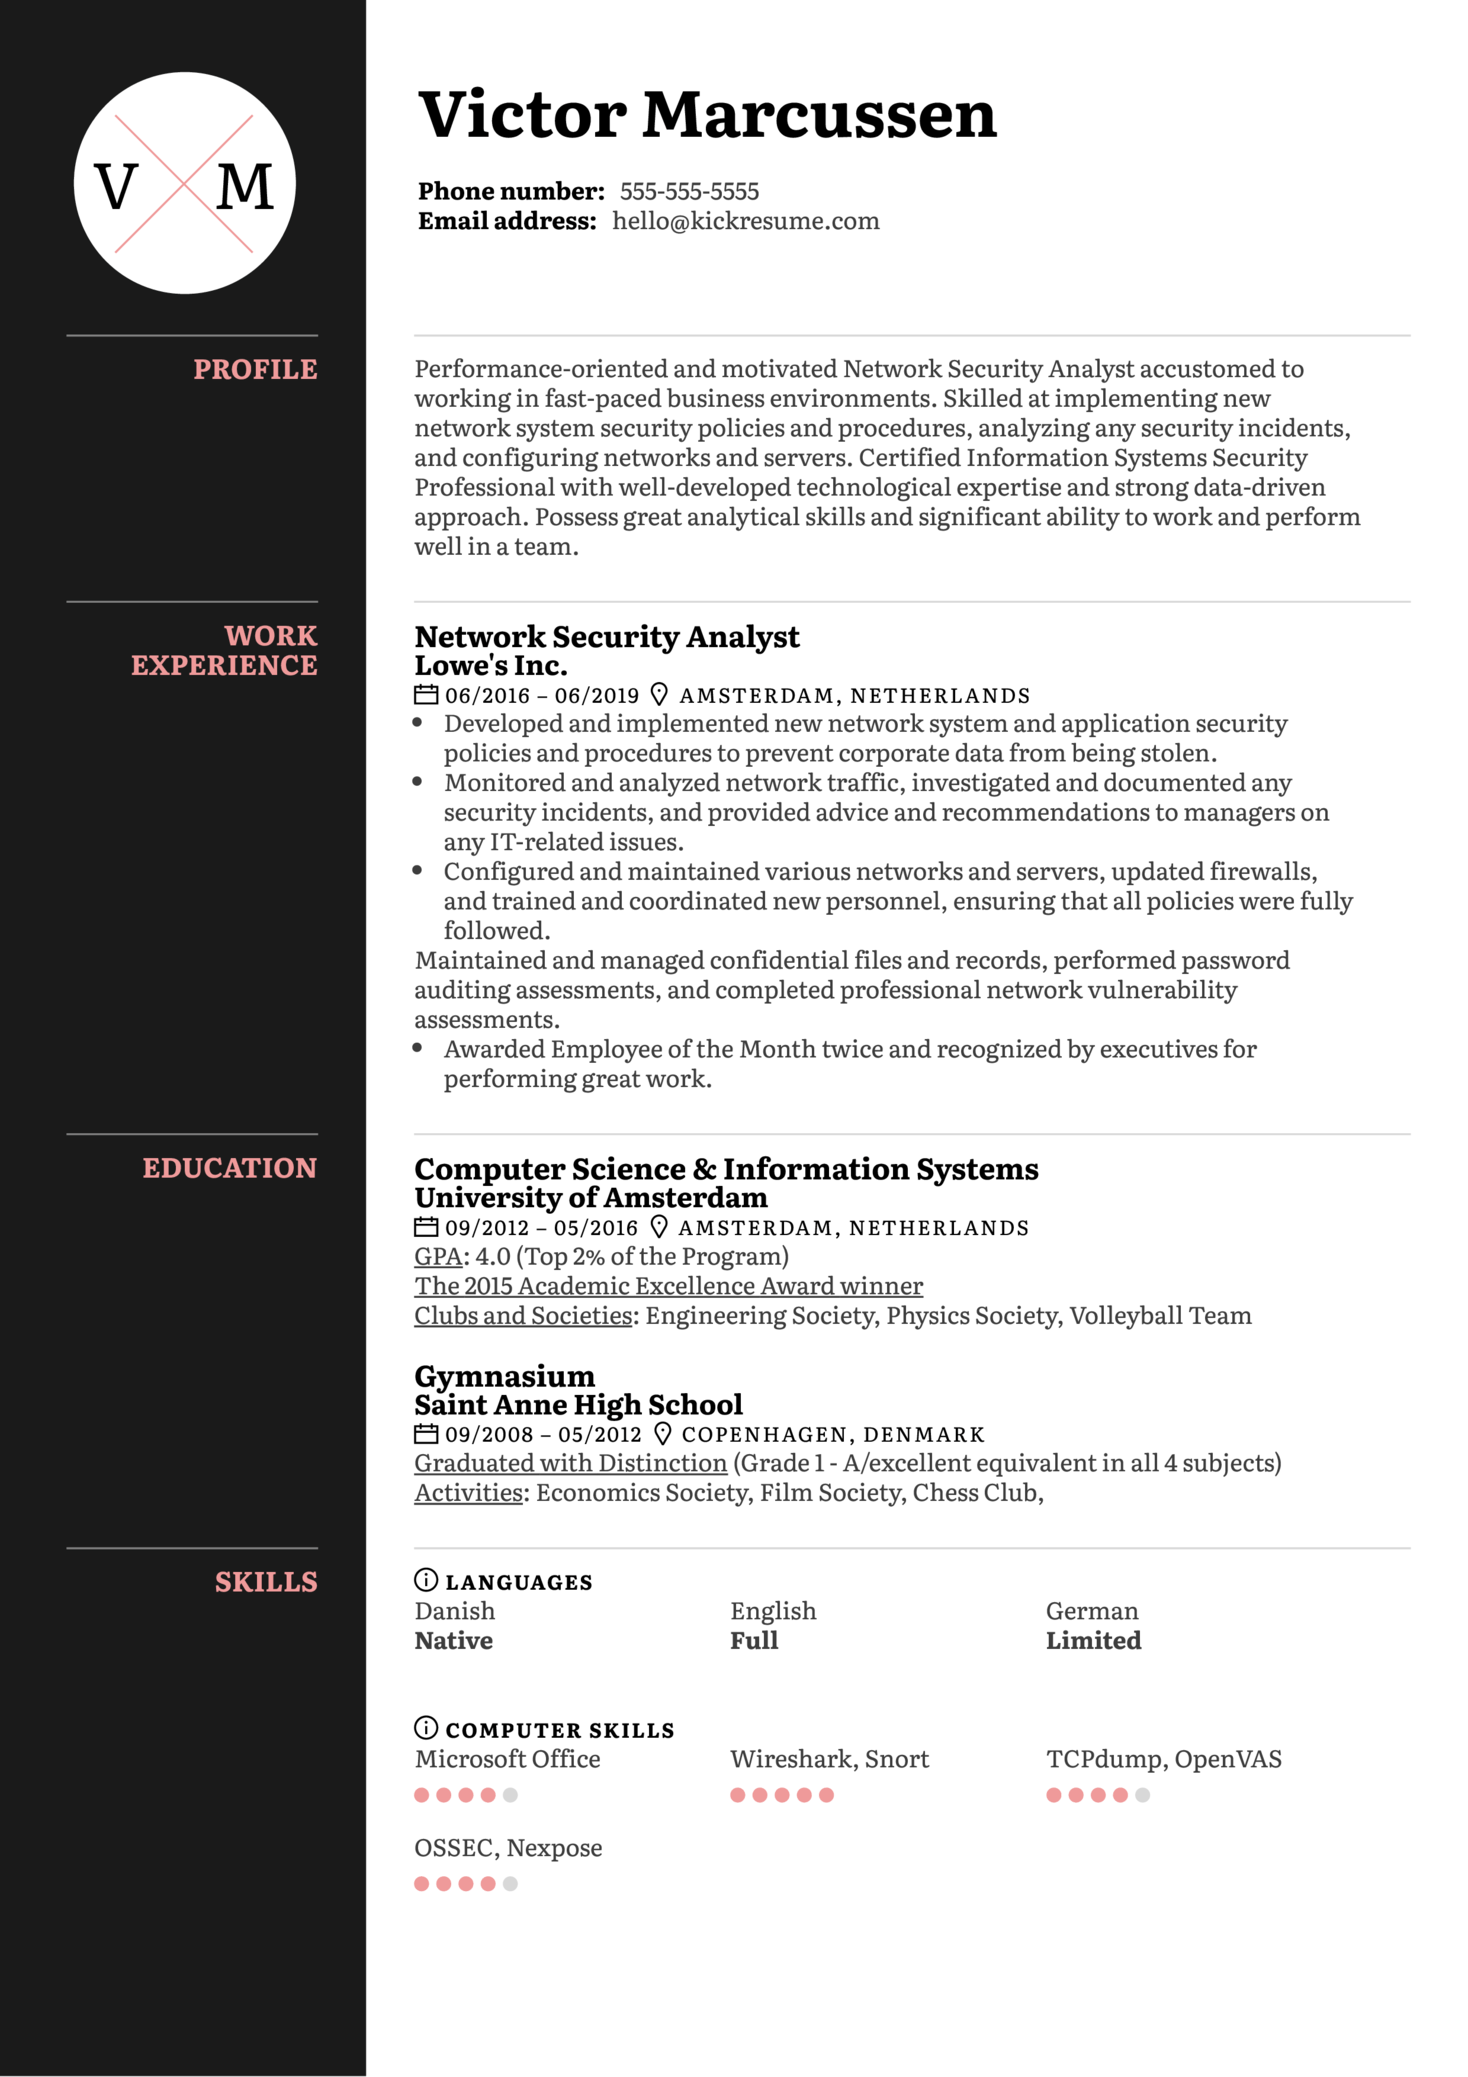 Network Security Analyst Resume Example (Teil 1)